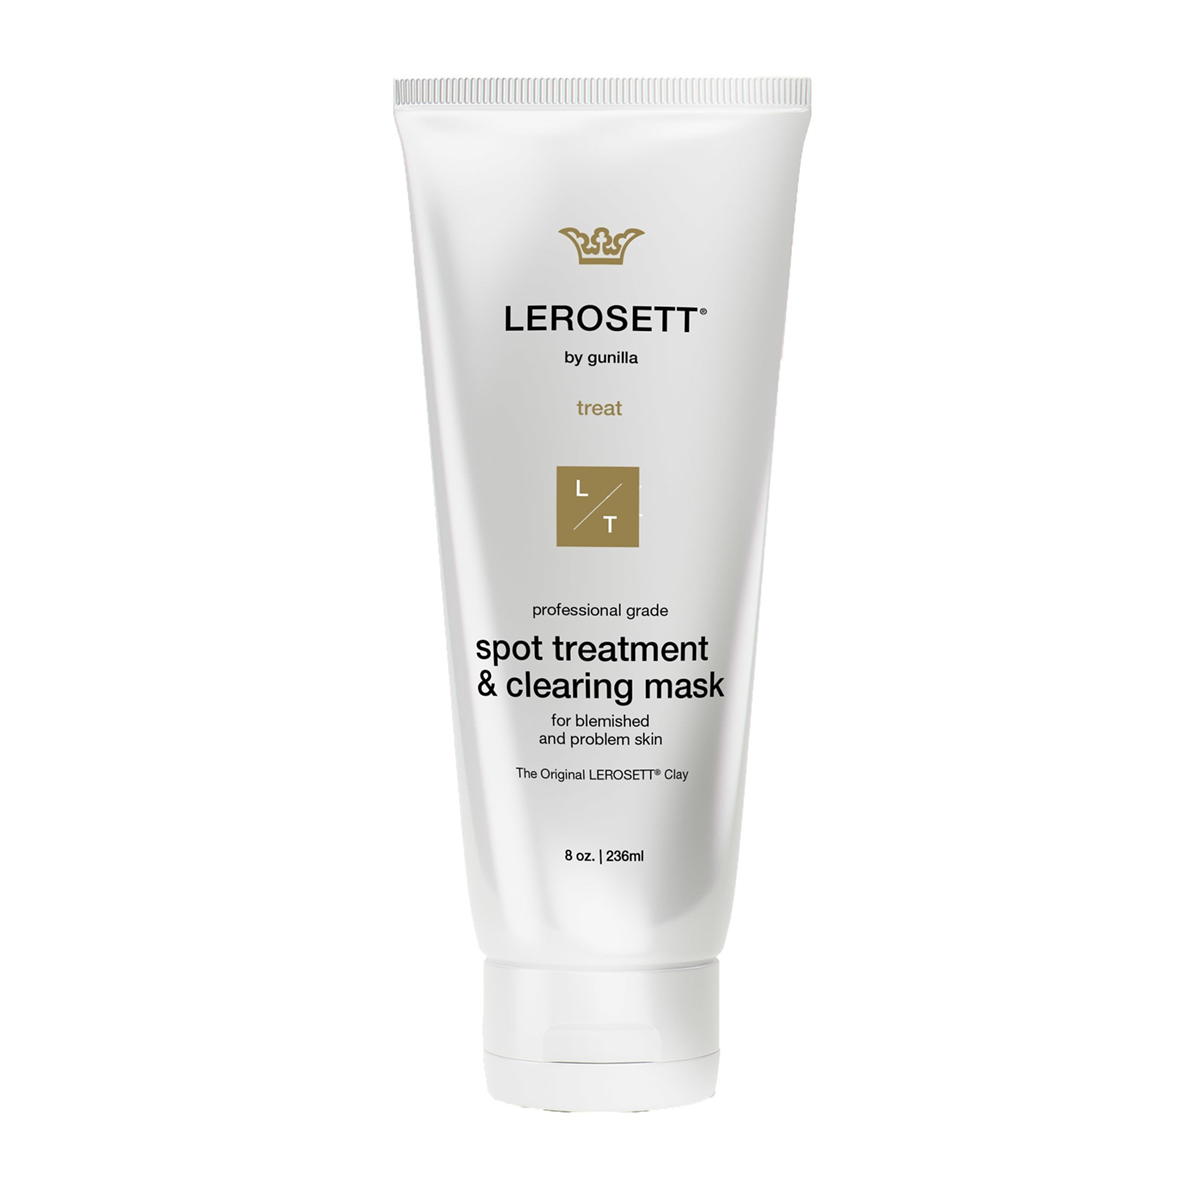 LEROSETT® Spot Treatment & Clearing Mask